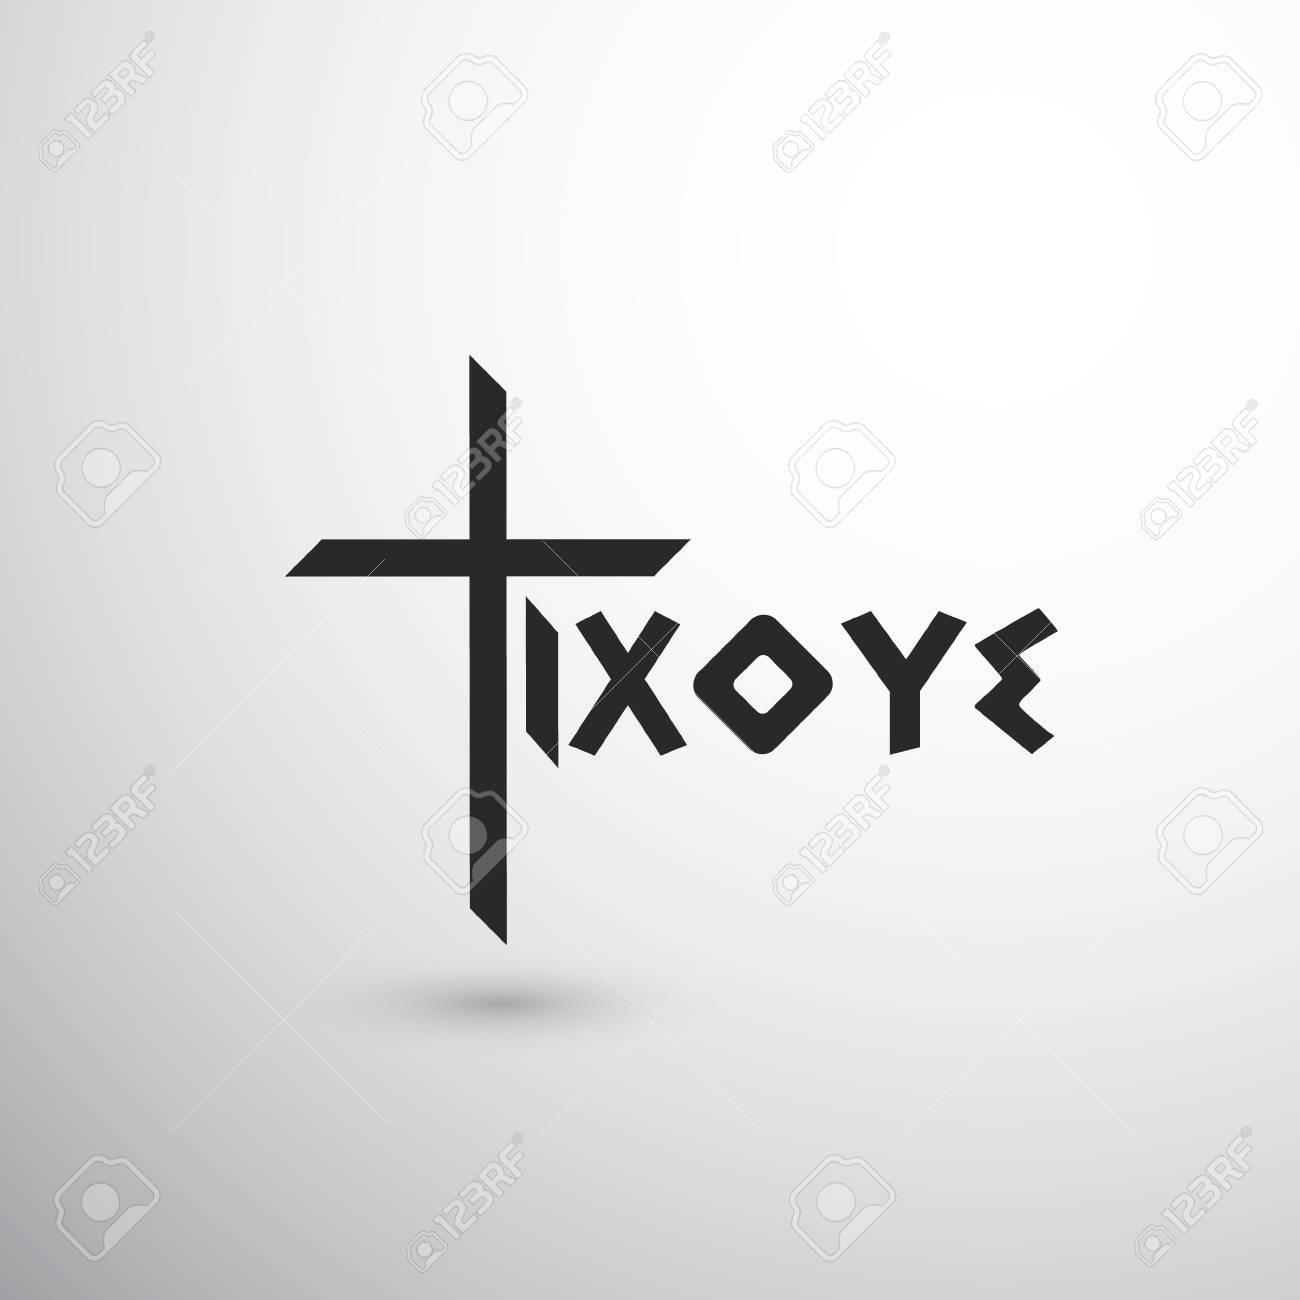 Grey christian cross with greek word ixoye stock photo picture grey christian cross with greek word ixoye stock photo 89173756 buycottarizona Choice Image